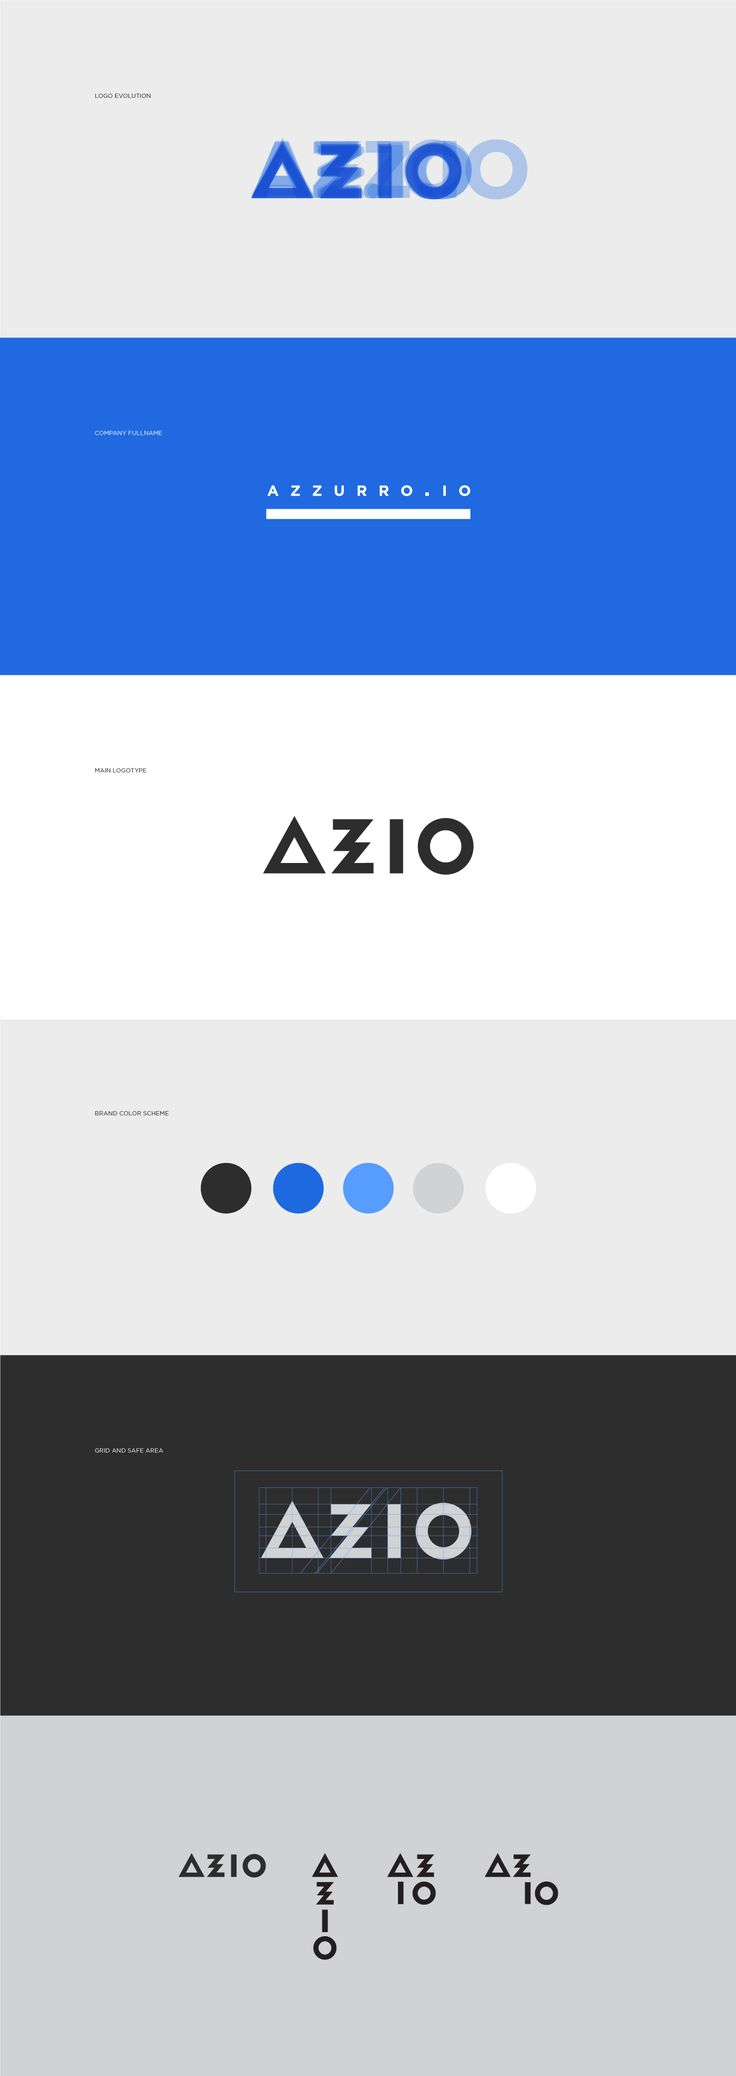 AZZURRO.IO on Behance